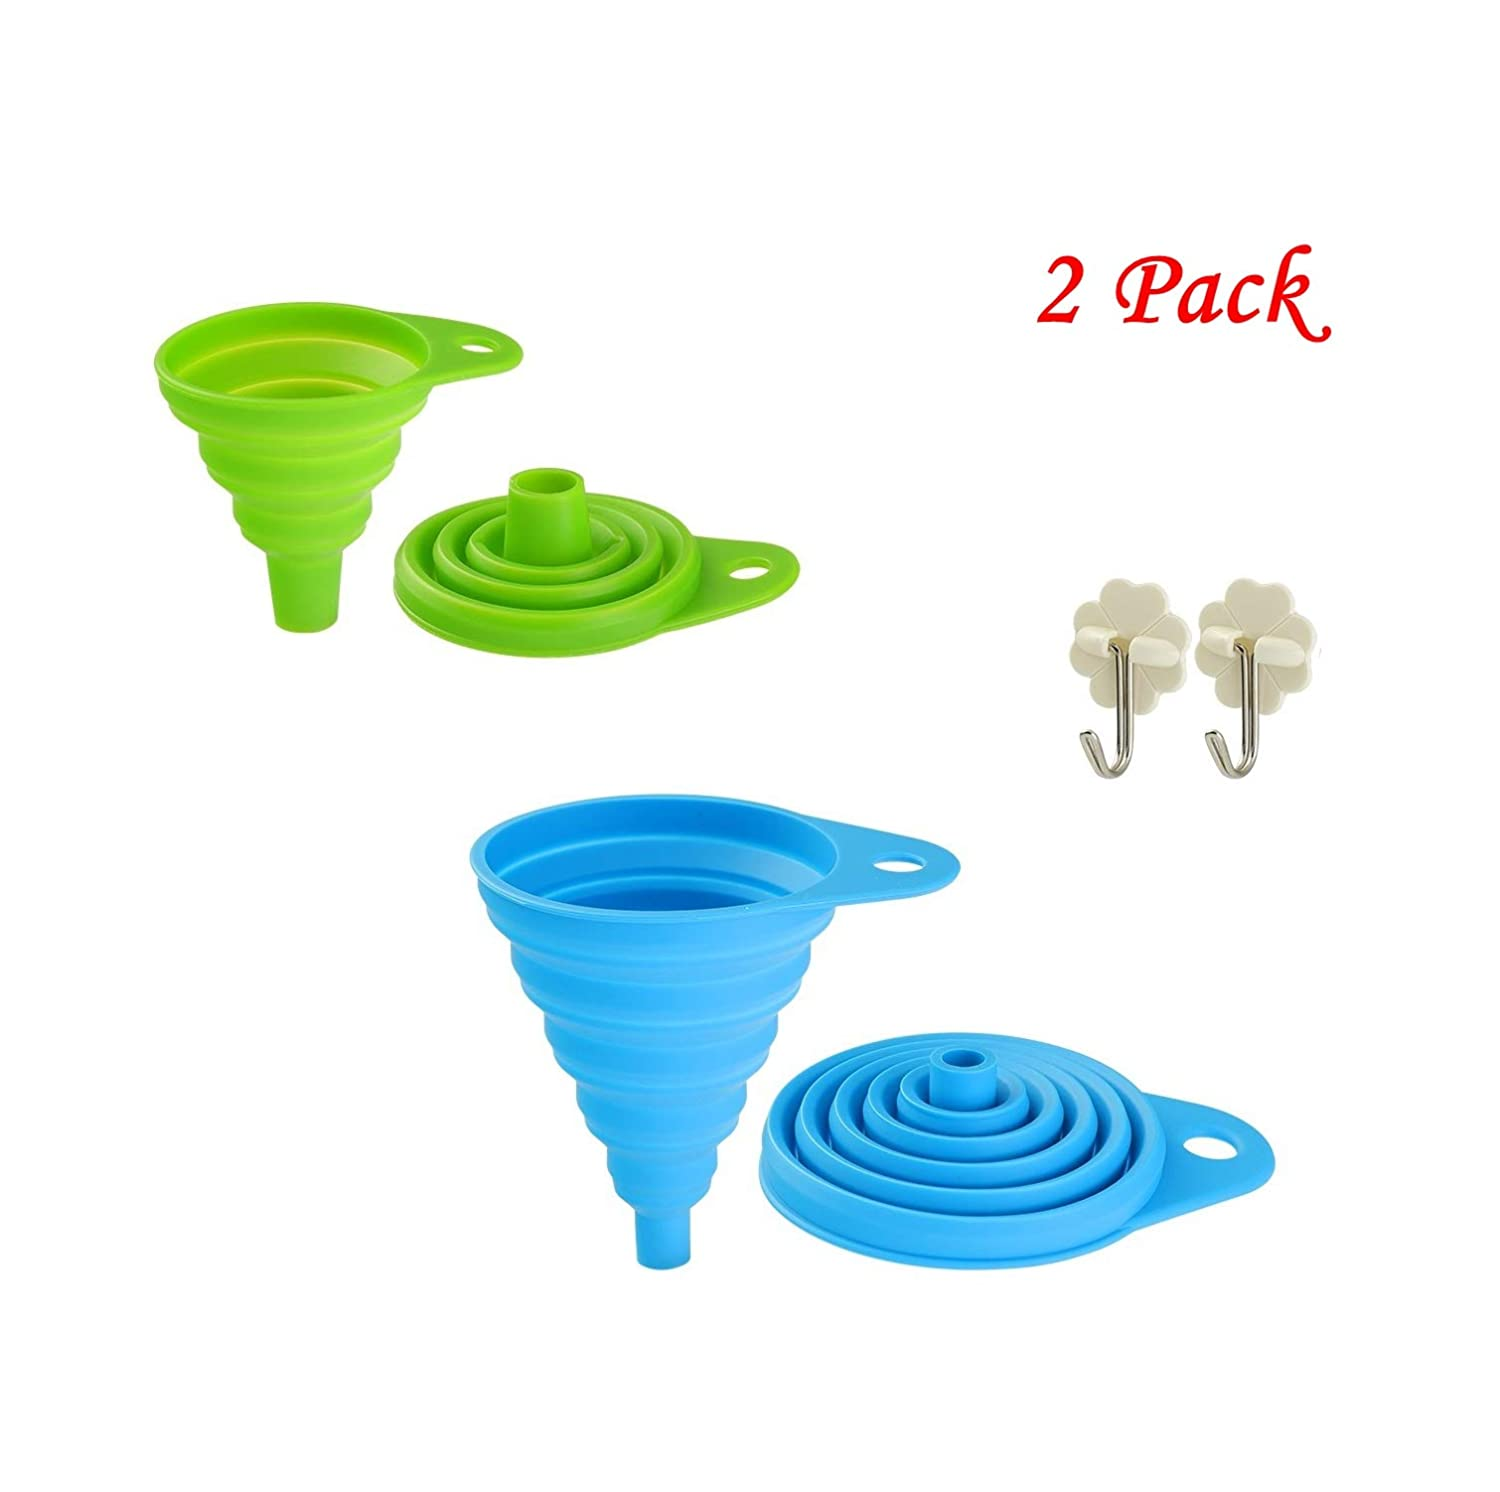 Collapsible Funnel Set, Food Grade FDA Approved Silicone Funnel Folding for Cooking, Water Bottle, Liquids, Powders Must-Have Kitchen (1 pack large+1 pack small)